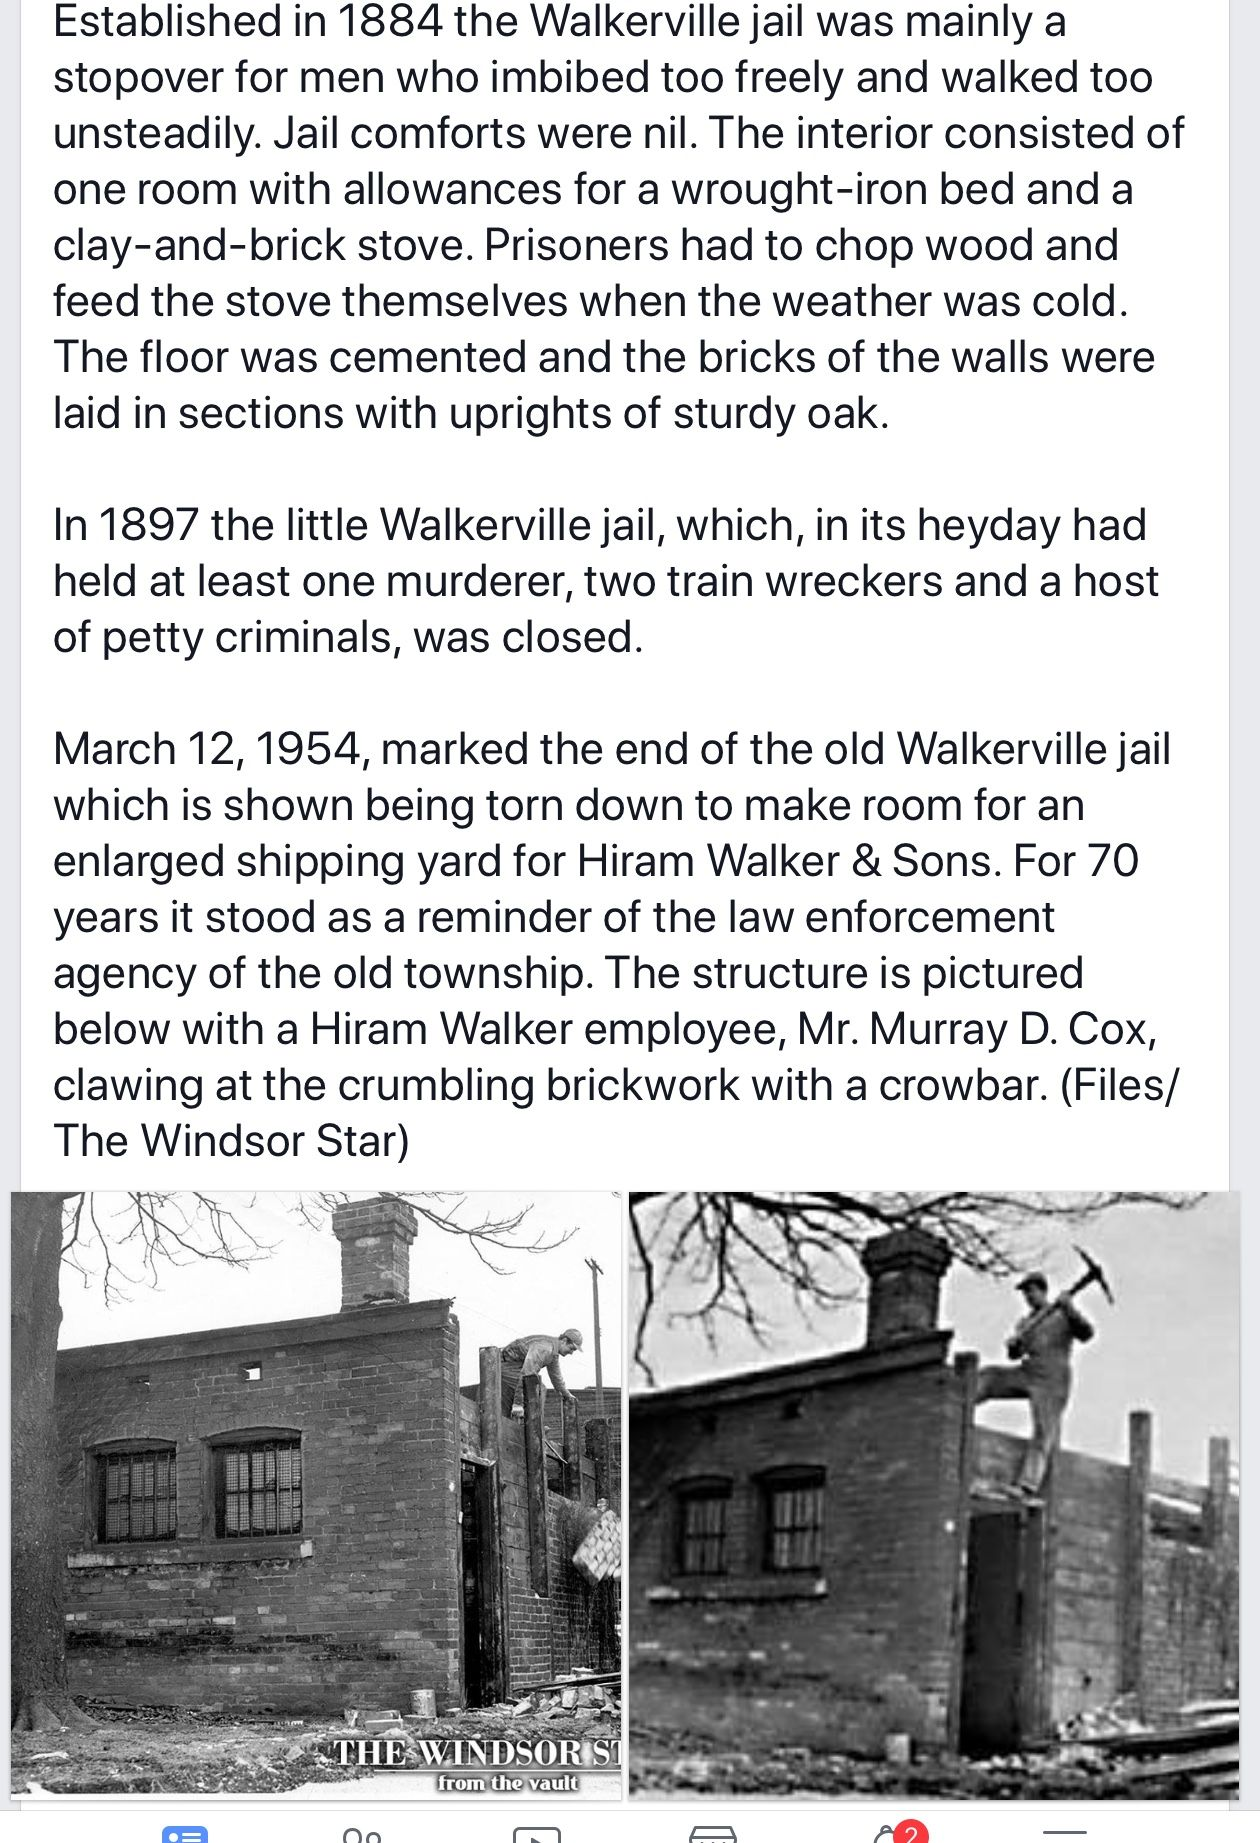 Pin by Jim Biggs on Windsor Ontario (History) Wrought